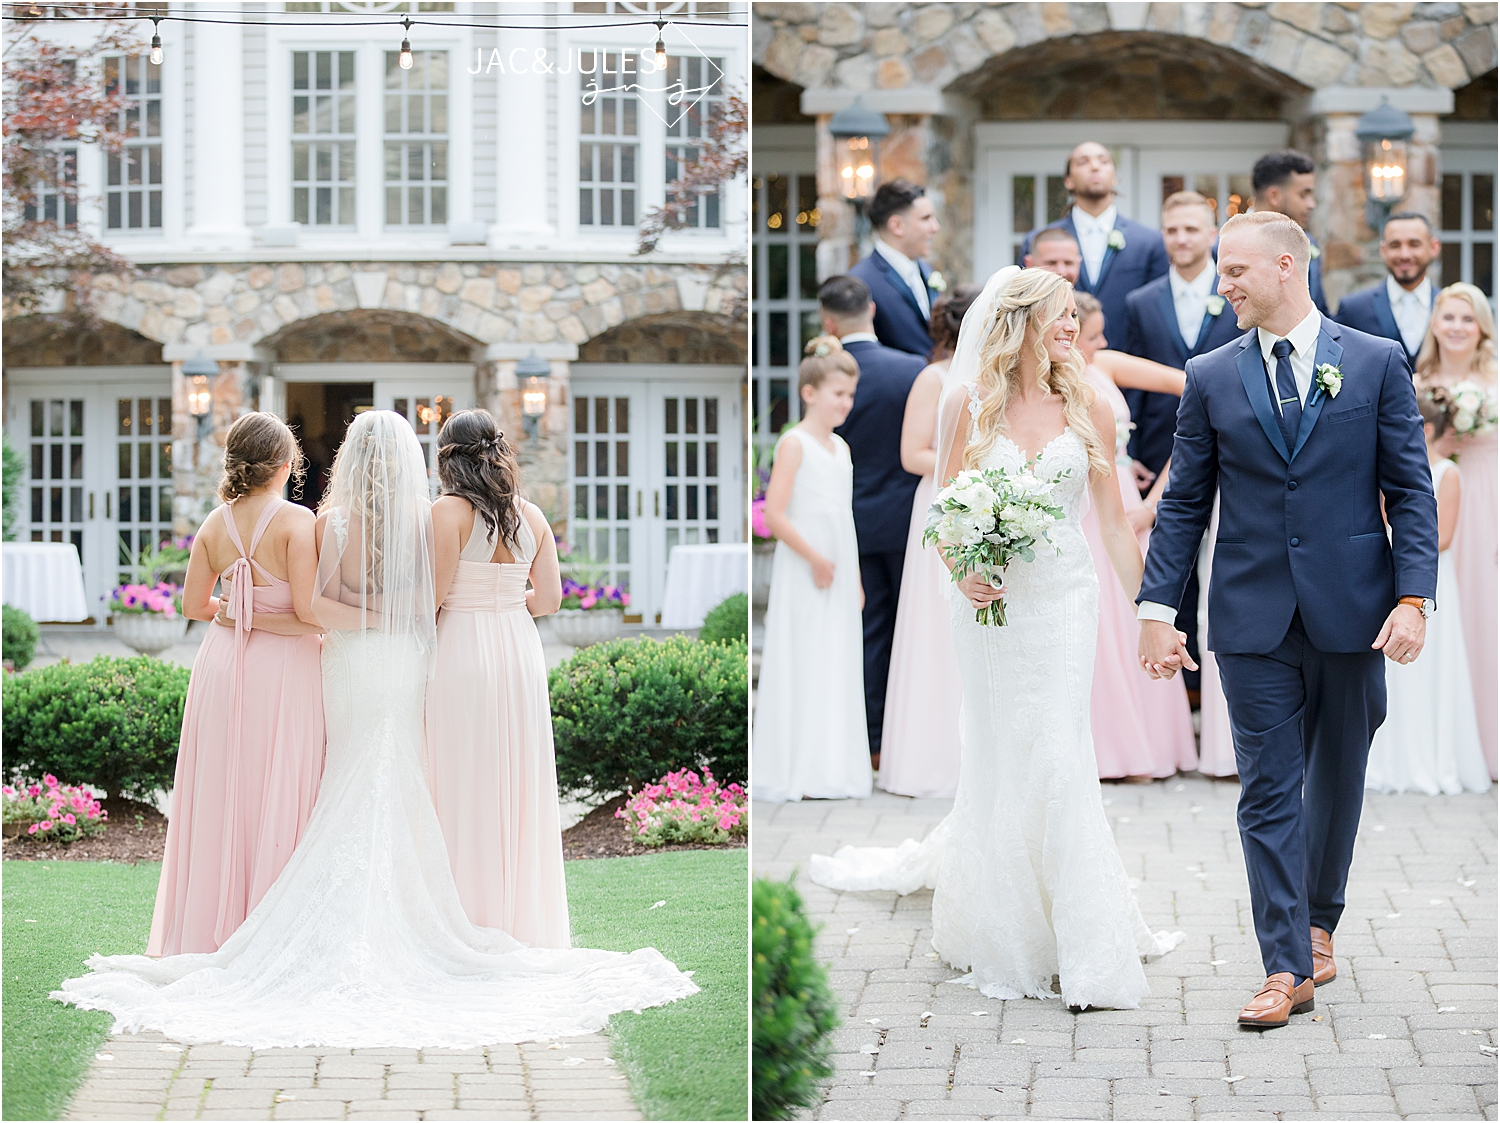 outdoor wedding at Olde Mill Inn of bride and bridesmaids